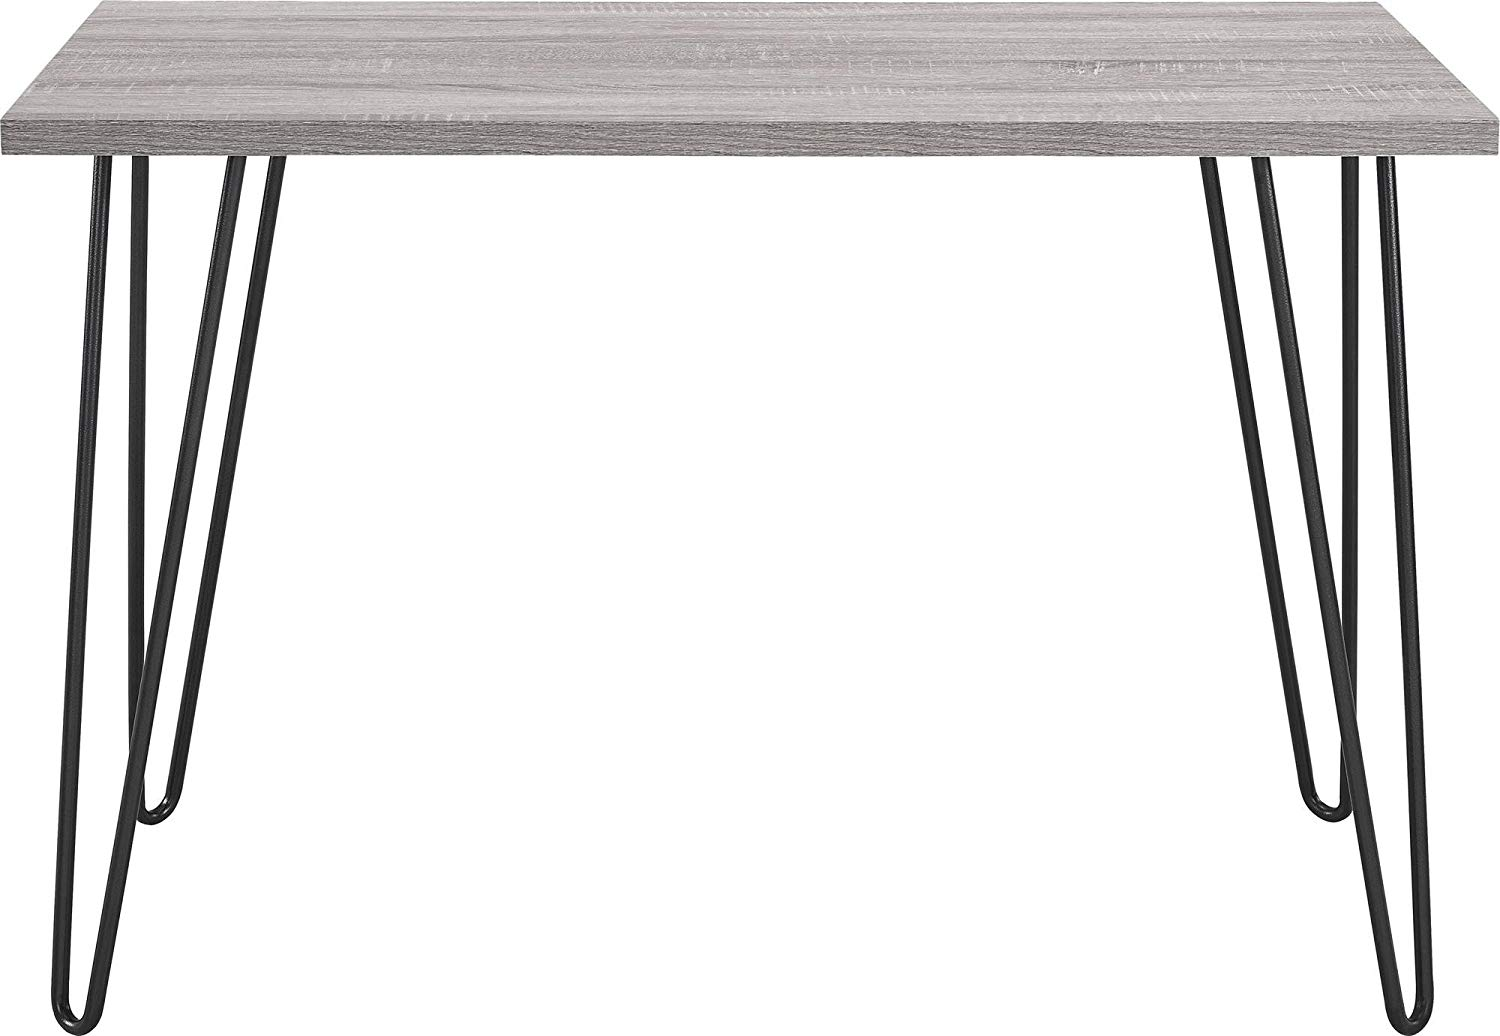 Retro two-tier desk by Ameriwood Home